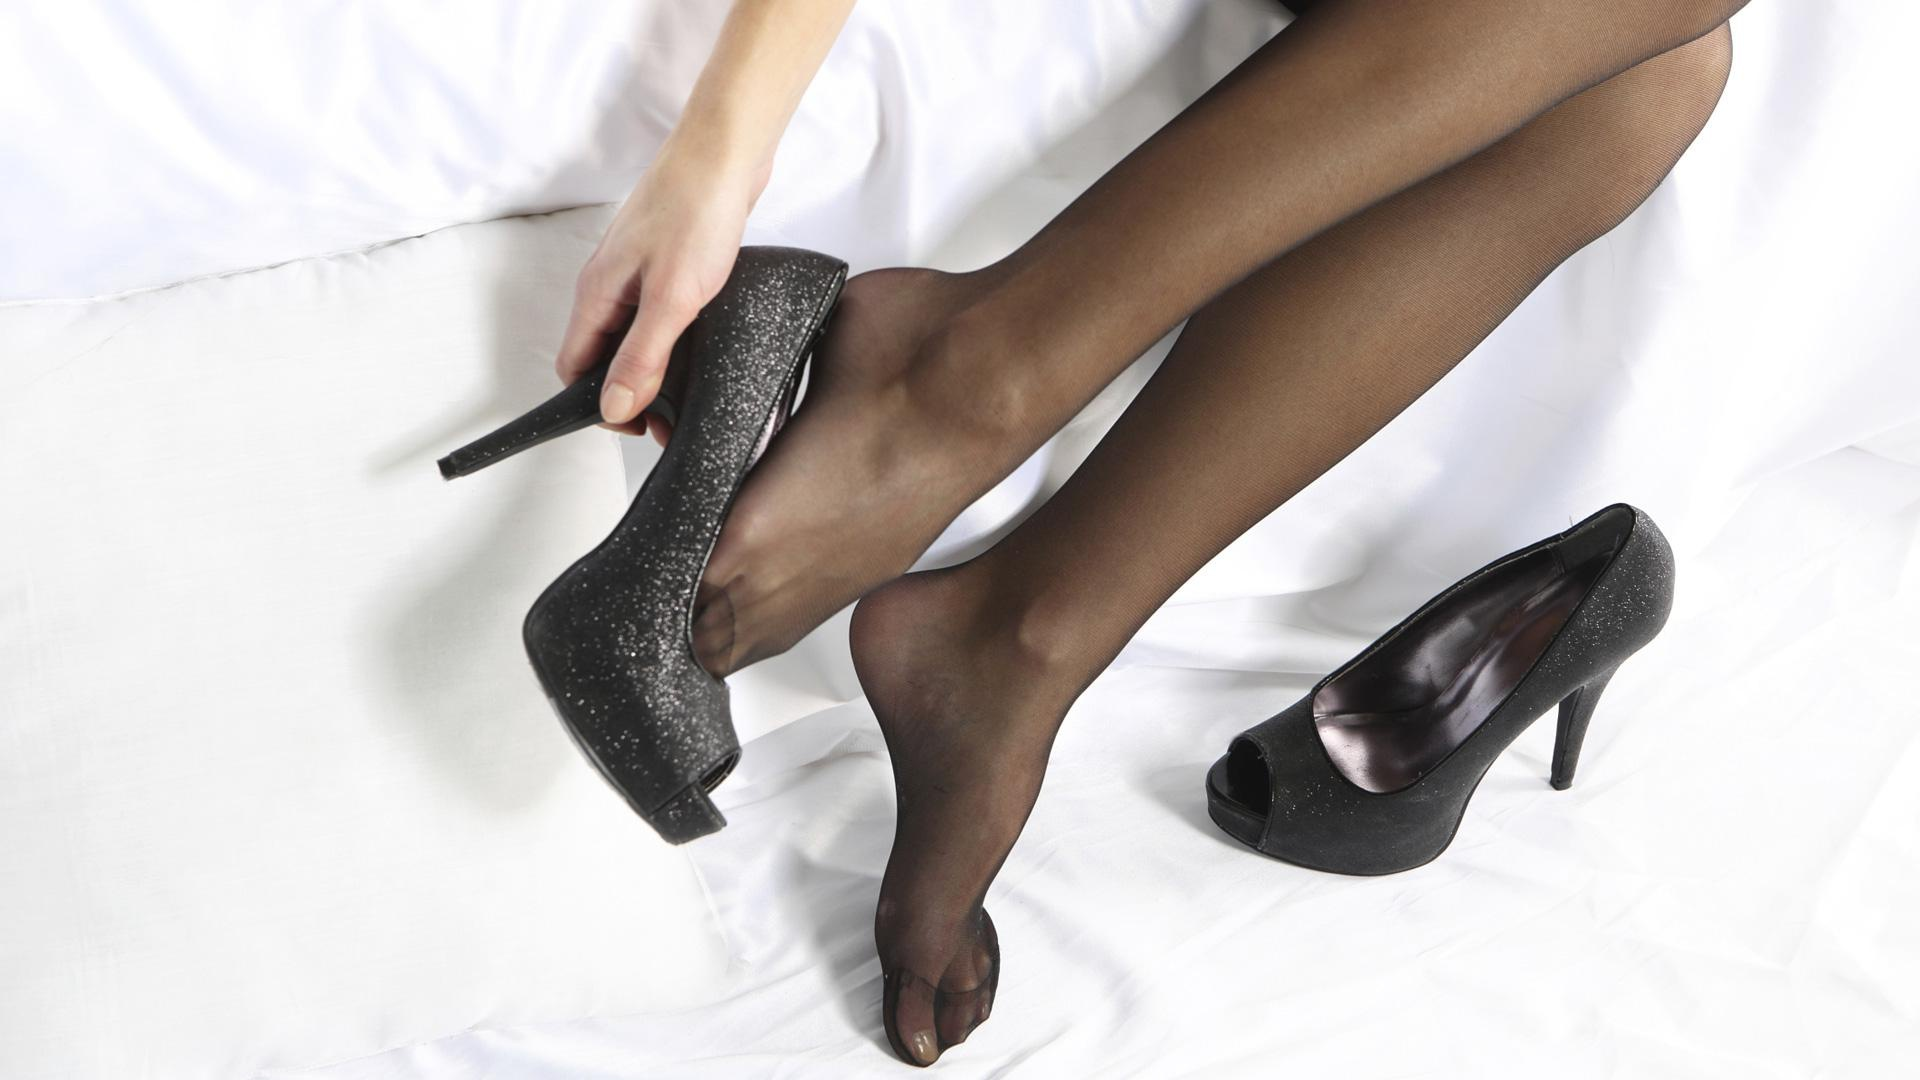 Can high heels really kill your orgasm?